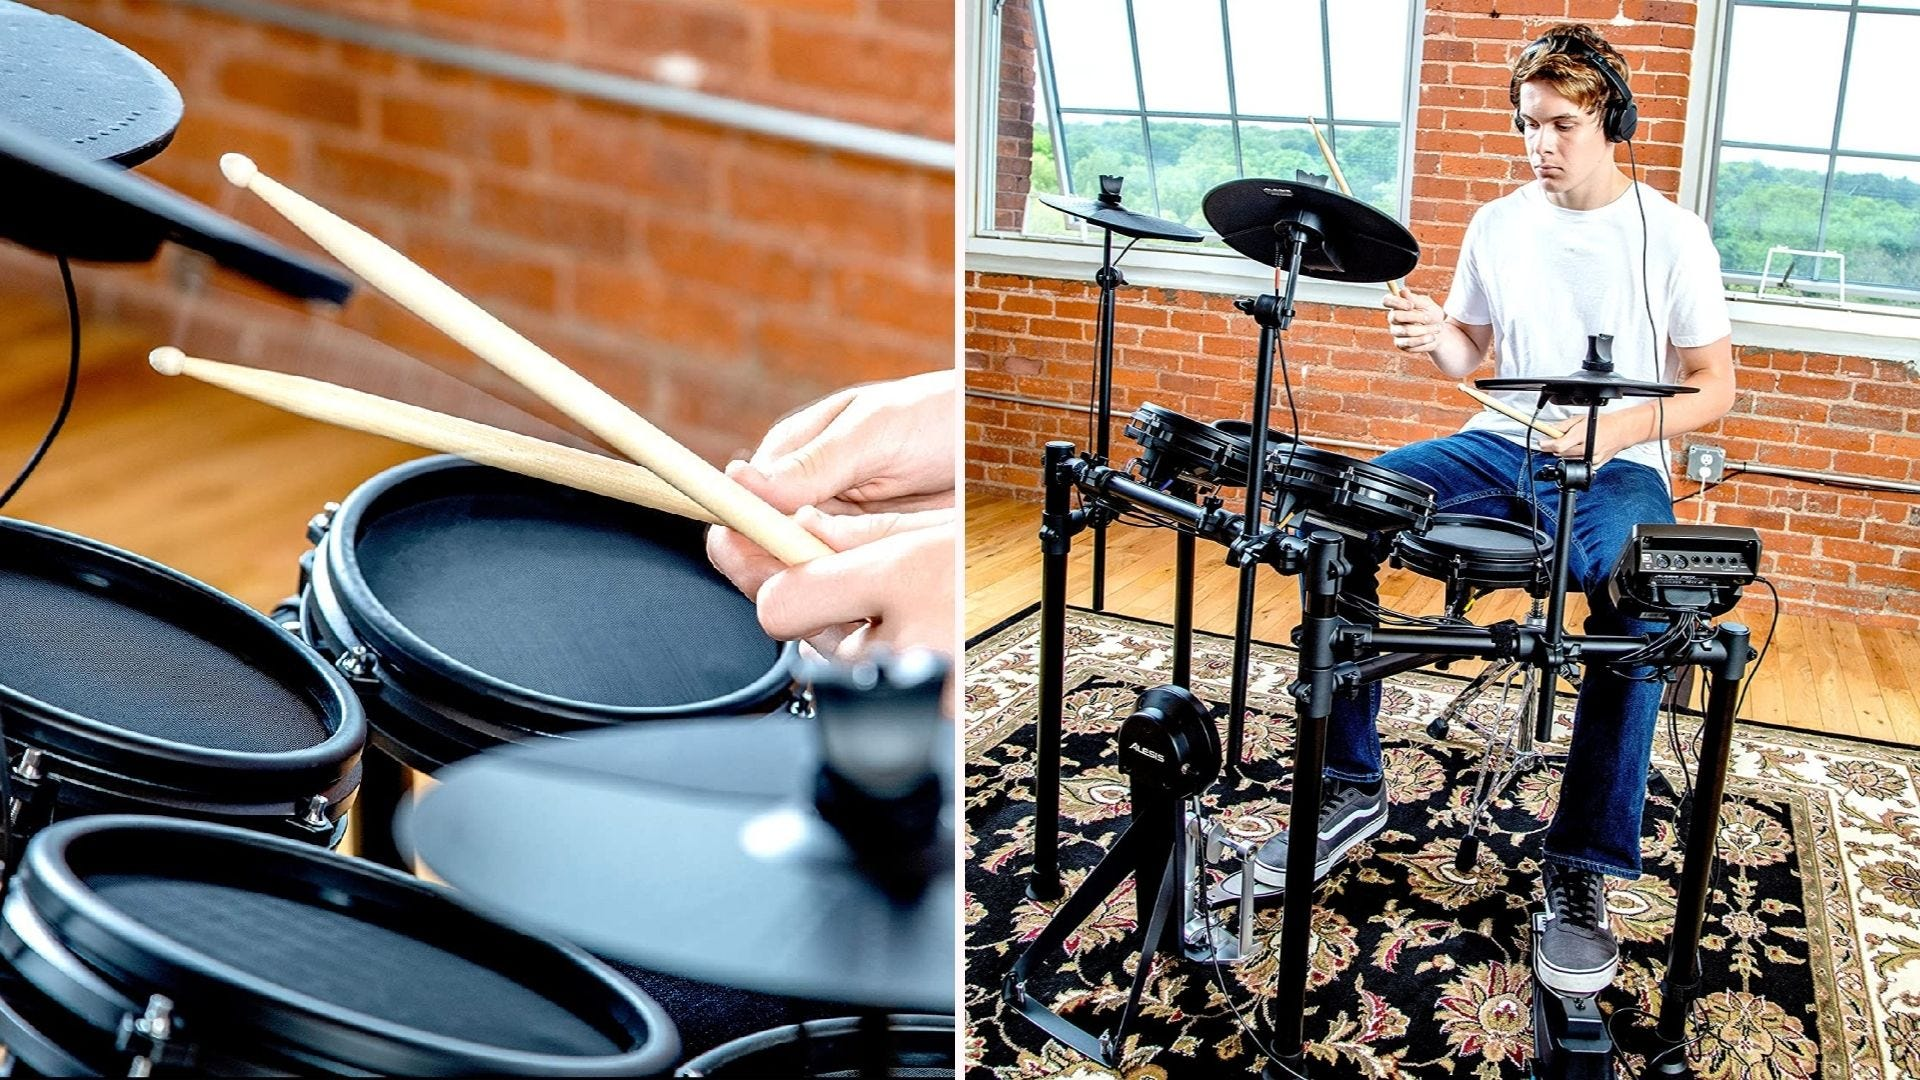 On the left, a close-up shot of drumsticks and electronic tom pads. On the right, a male drummer plays on electronic drum set with headphones.